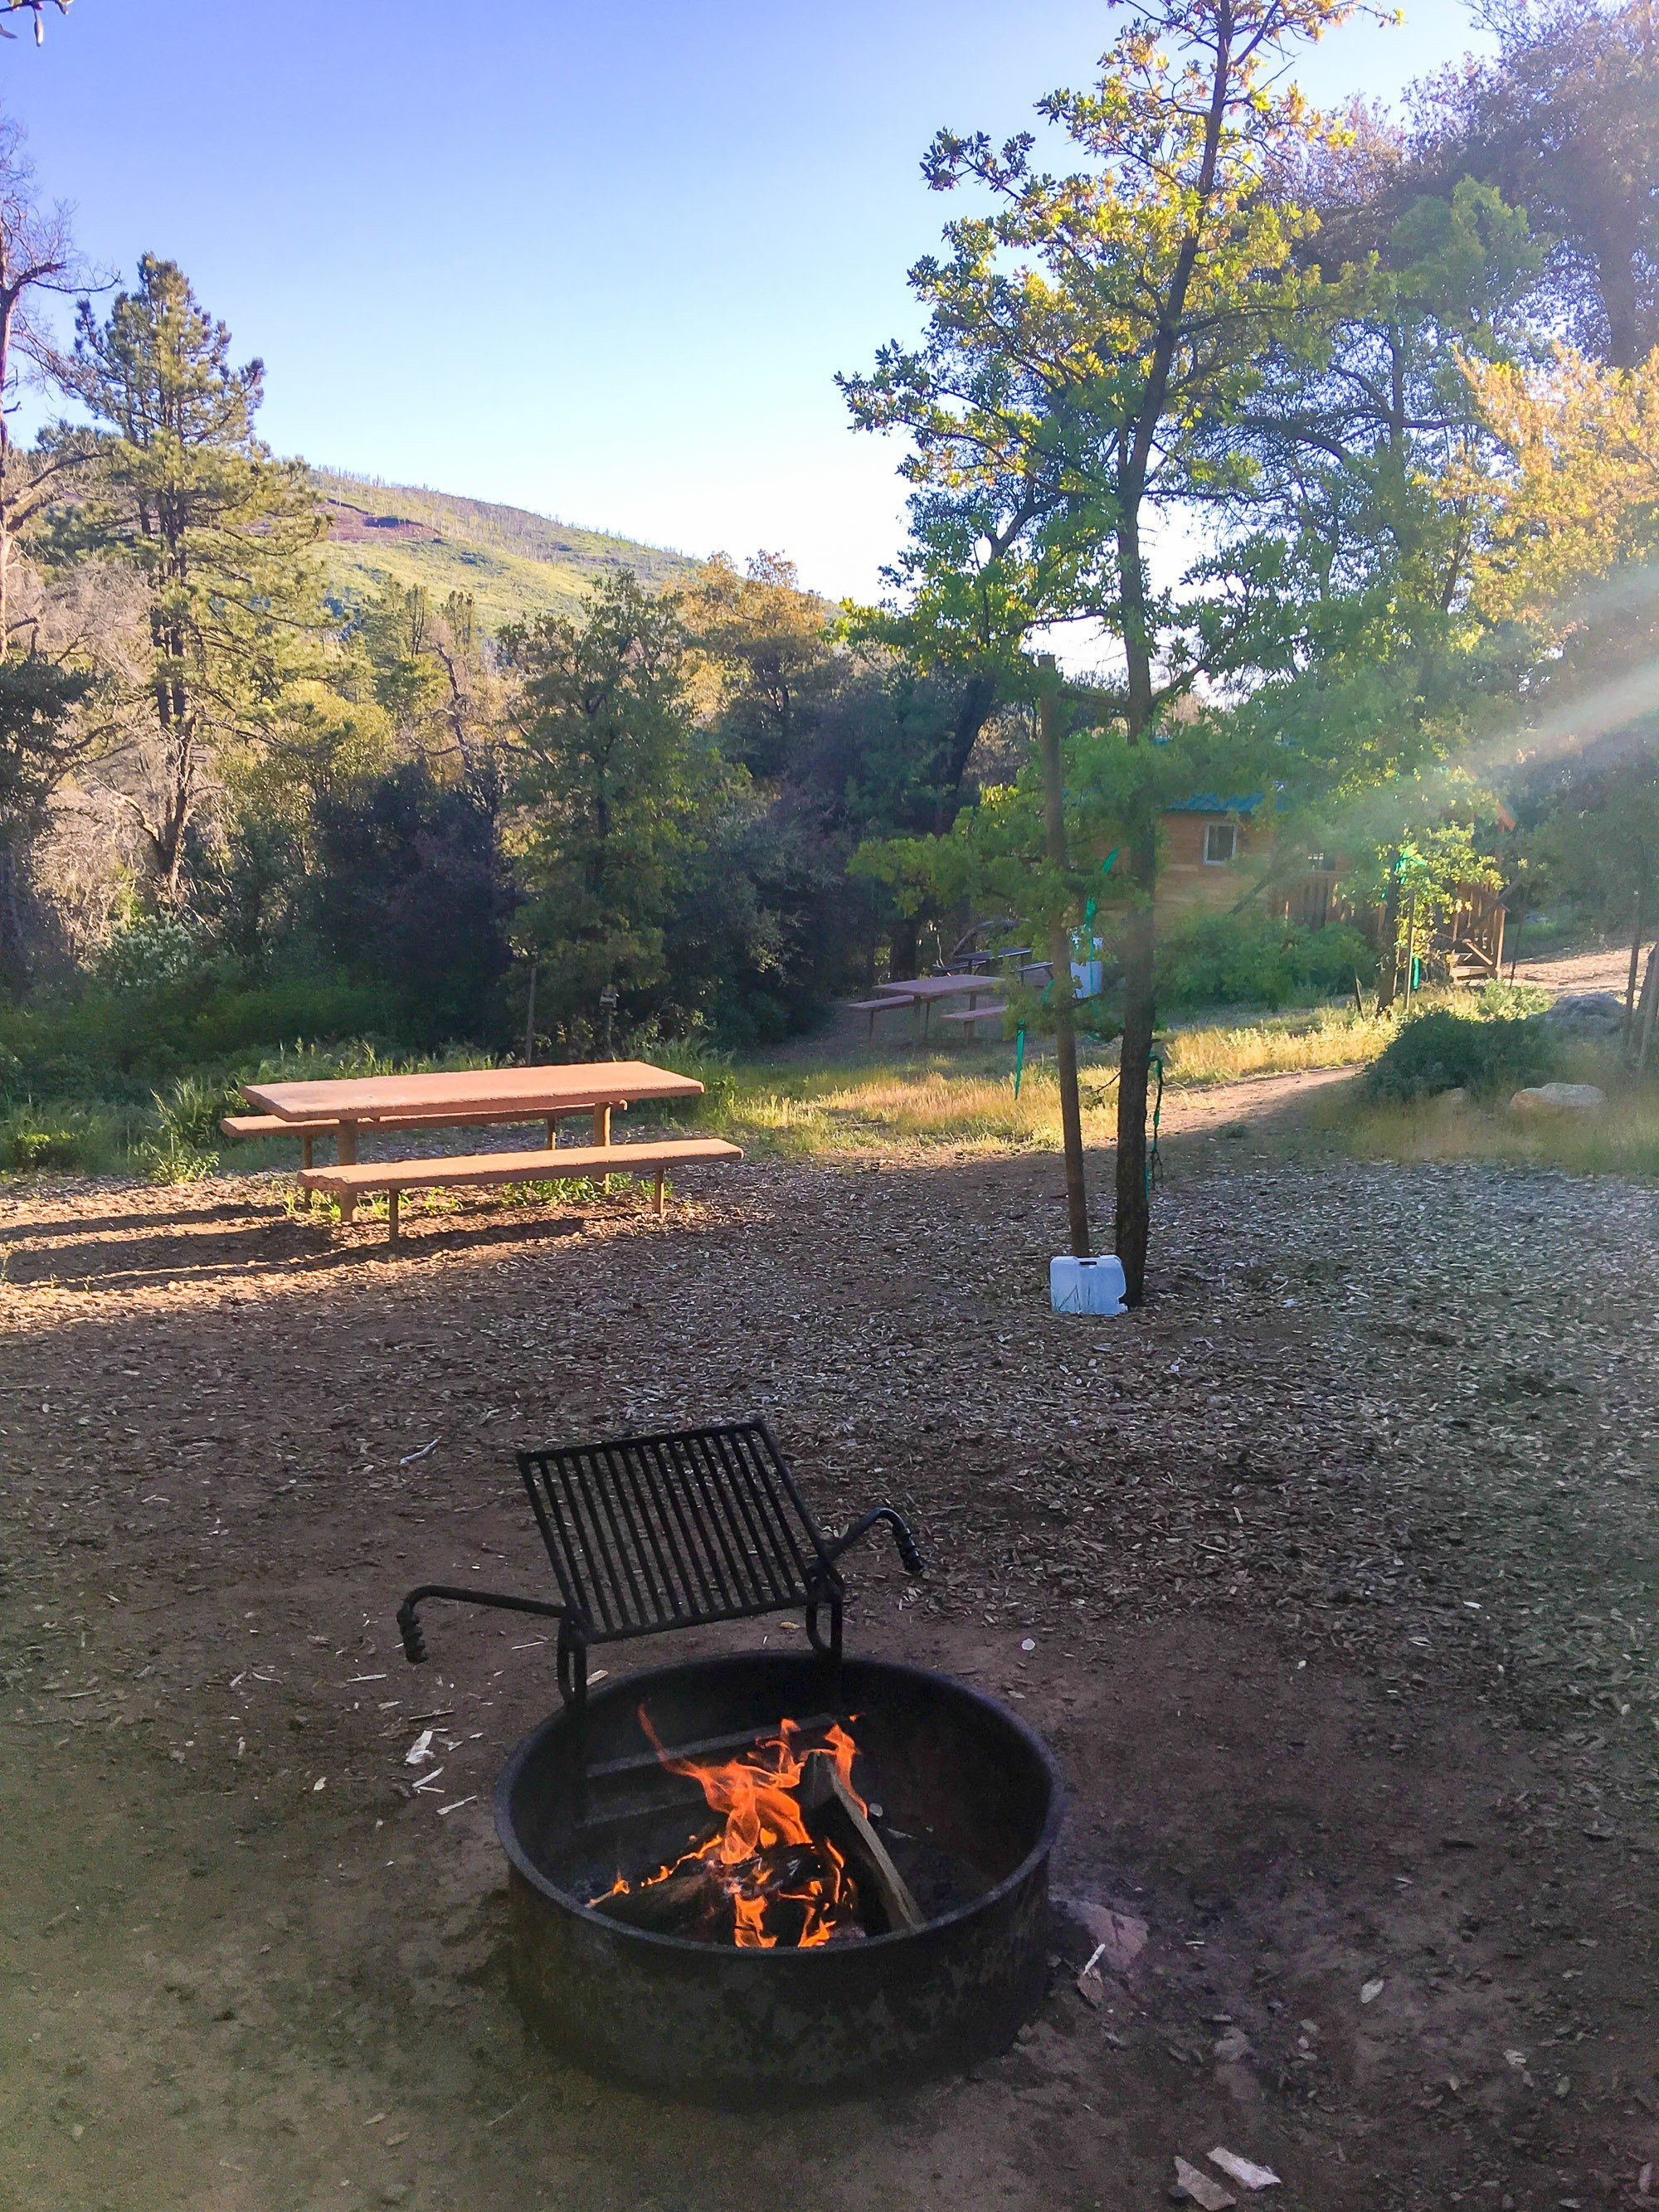 A campfire at William Heise County Park in Julian, CA